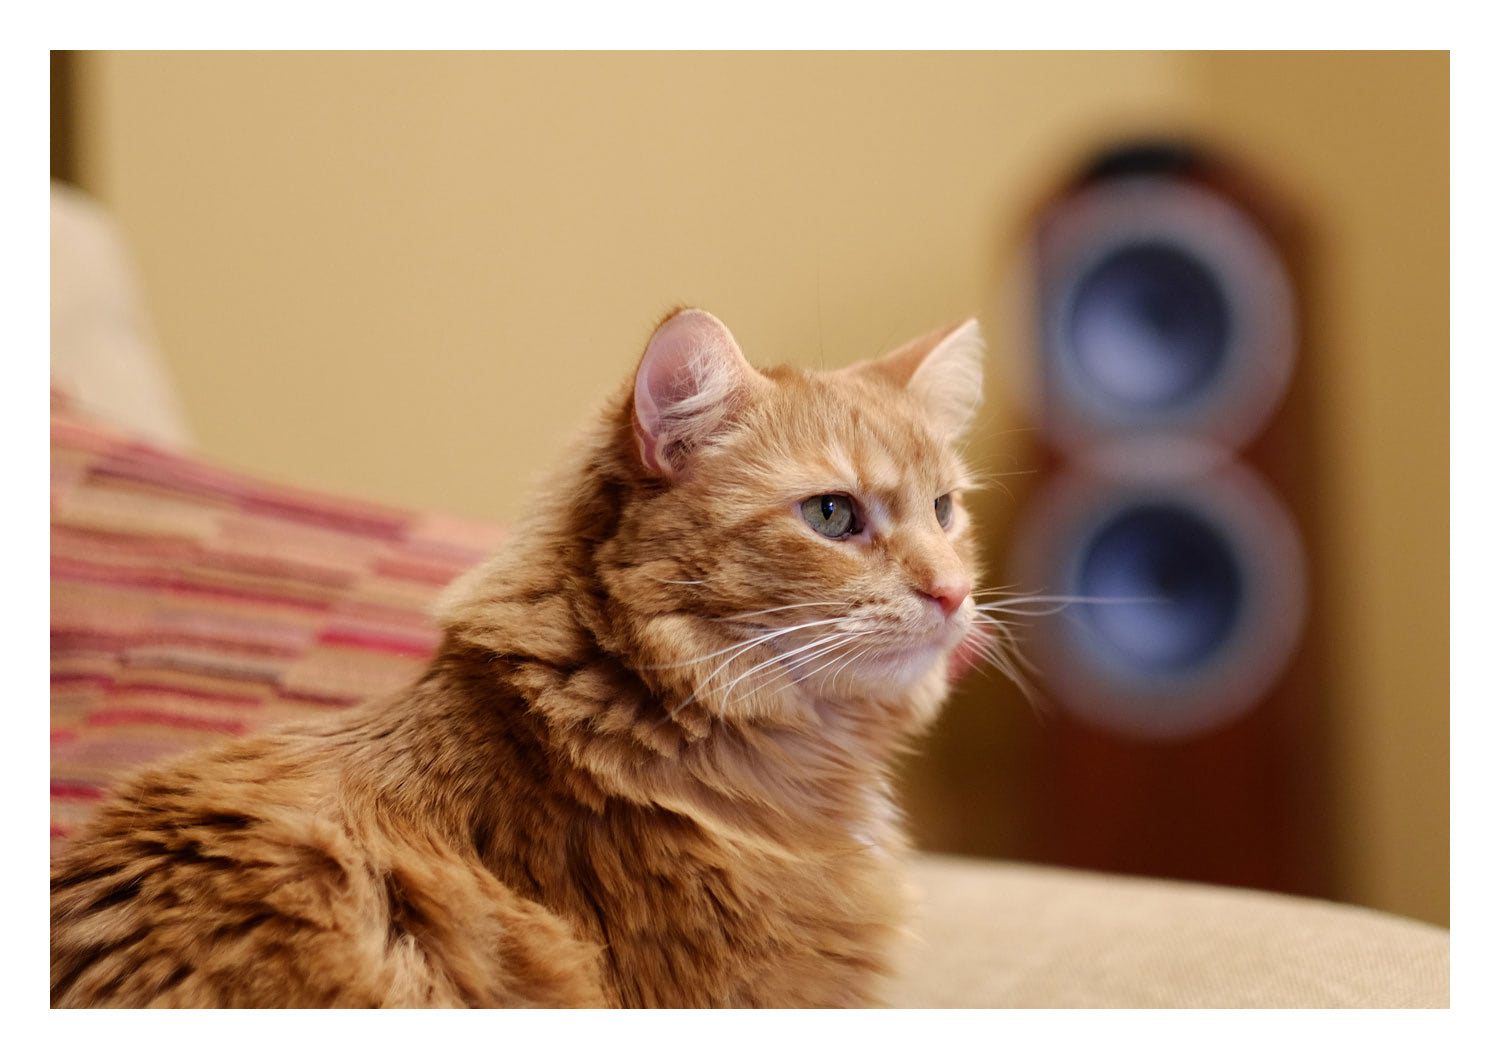 Not just A shameless cat photo, check out the bokeh on the speaker. It looks cool, but it's a distraction from the subject – F/1.2